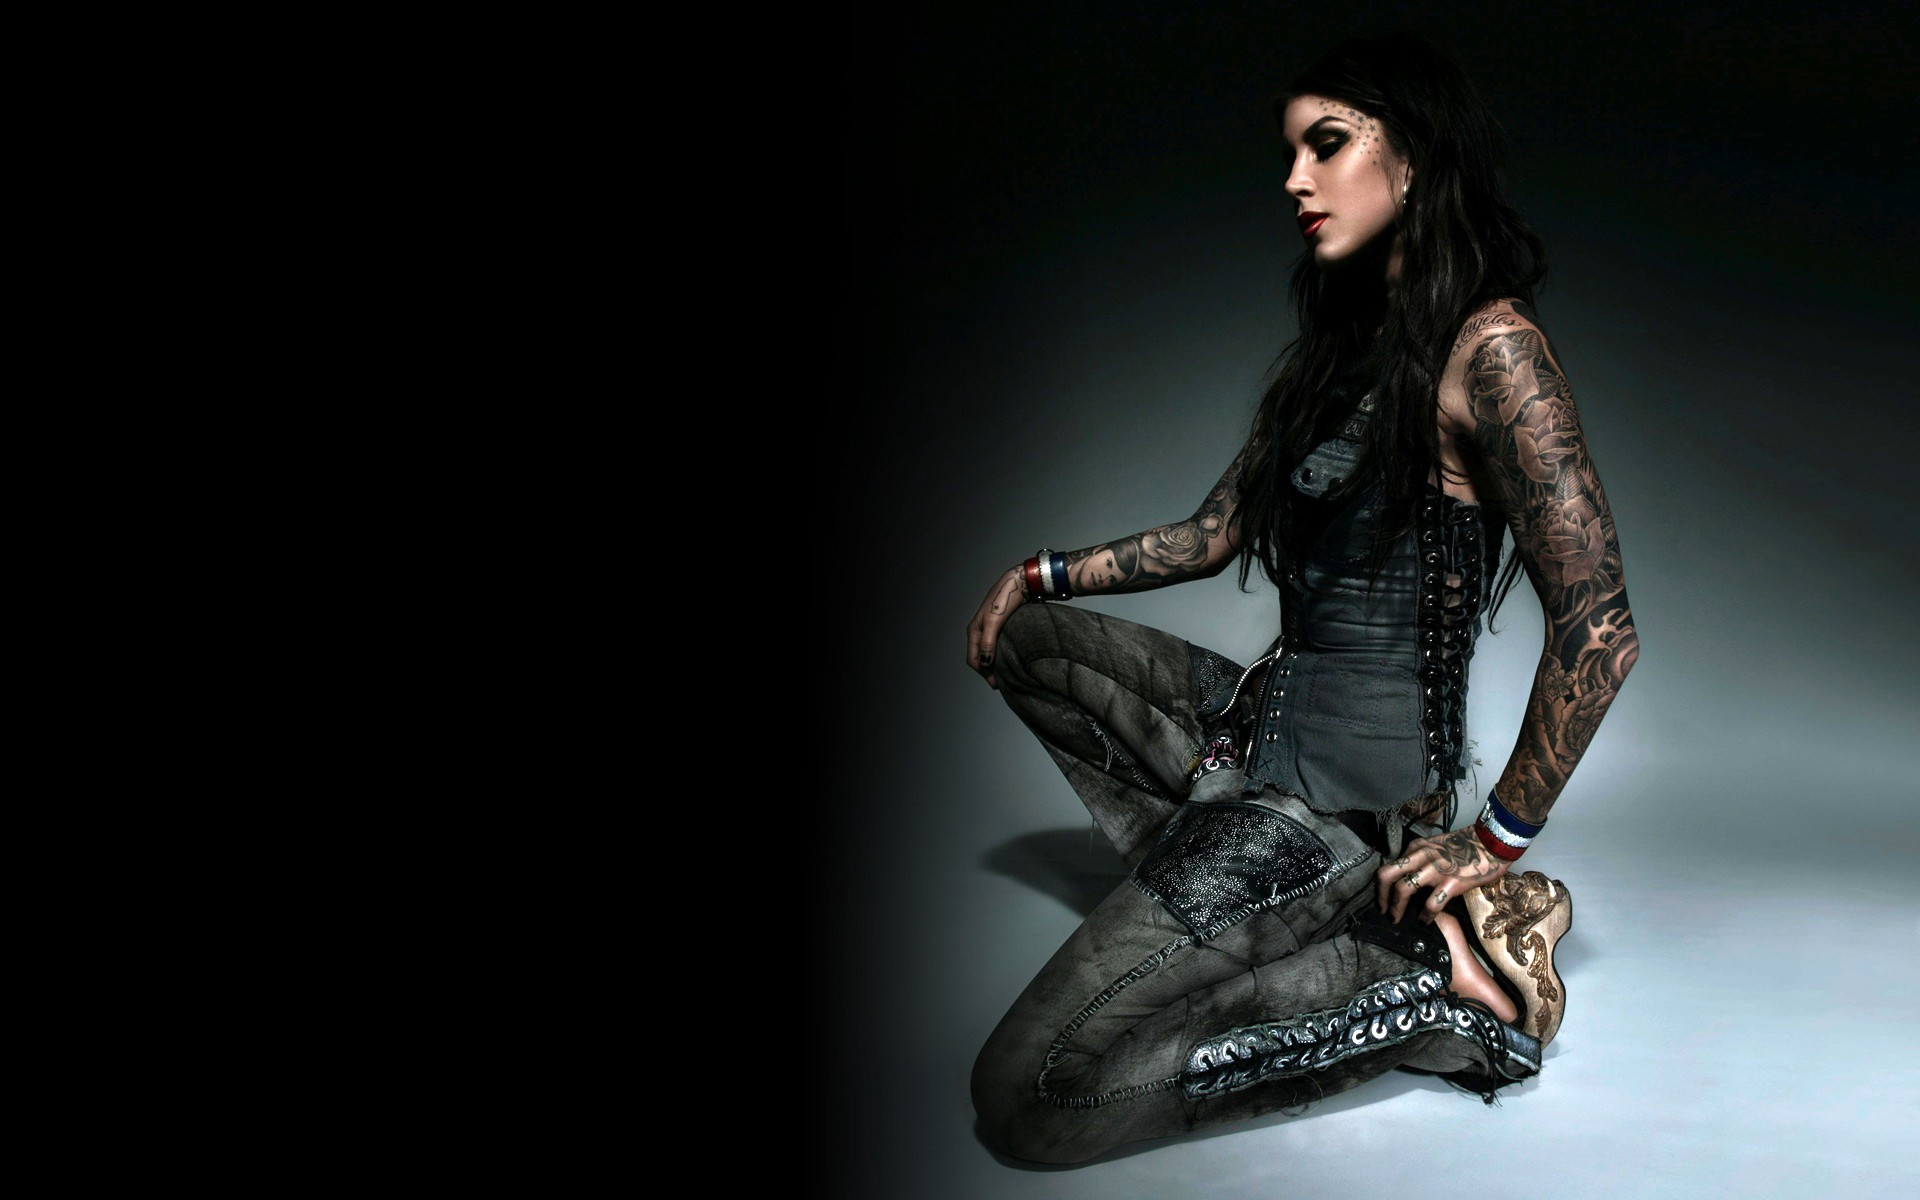 46 Tattoo Models Wallpapers On Wallpapersafari